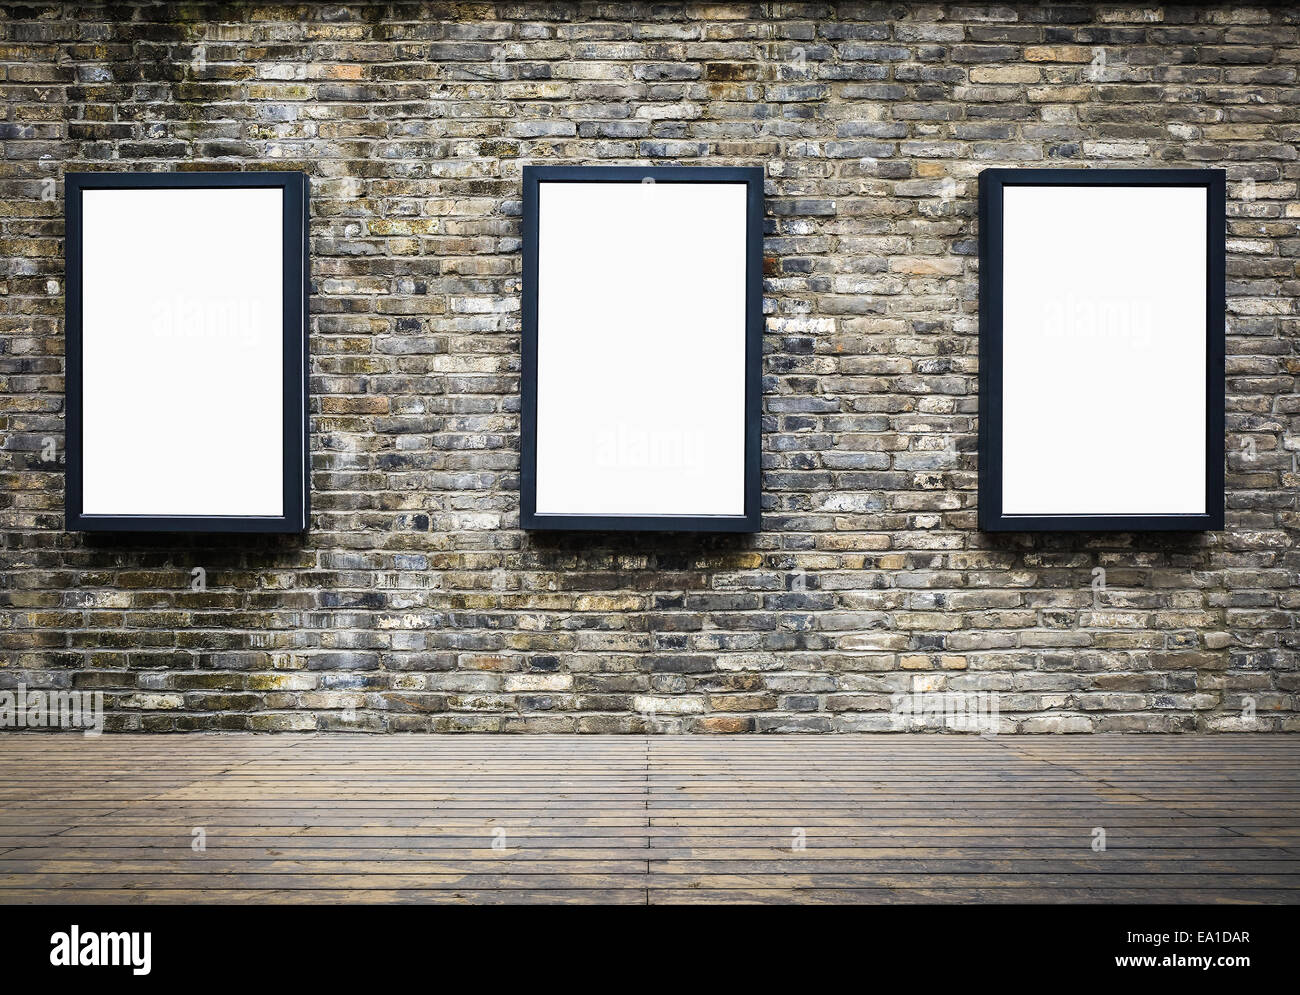 advertising billboard in the old brick wall - Stock Image